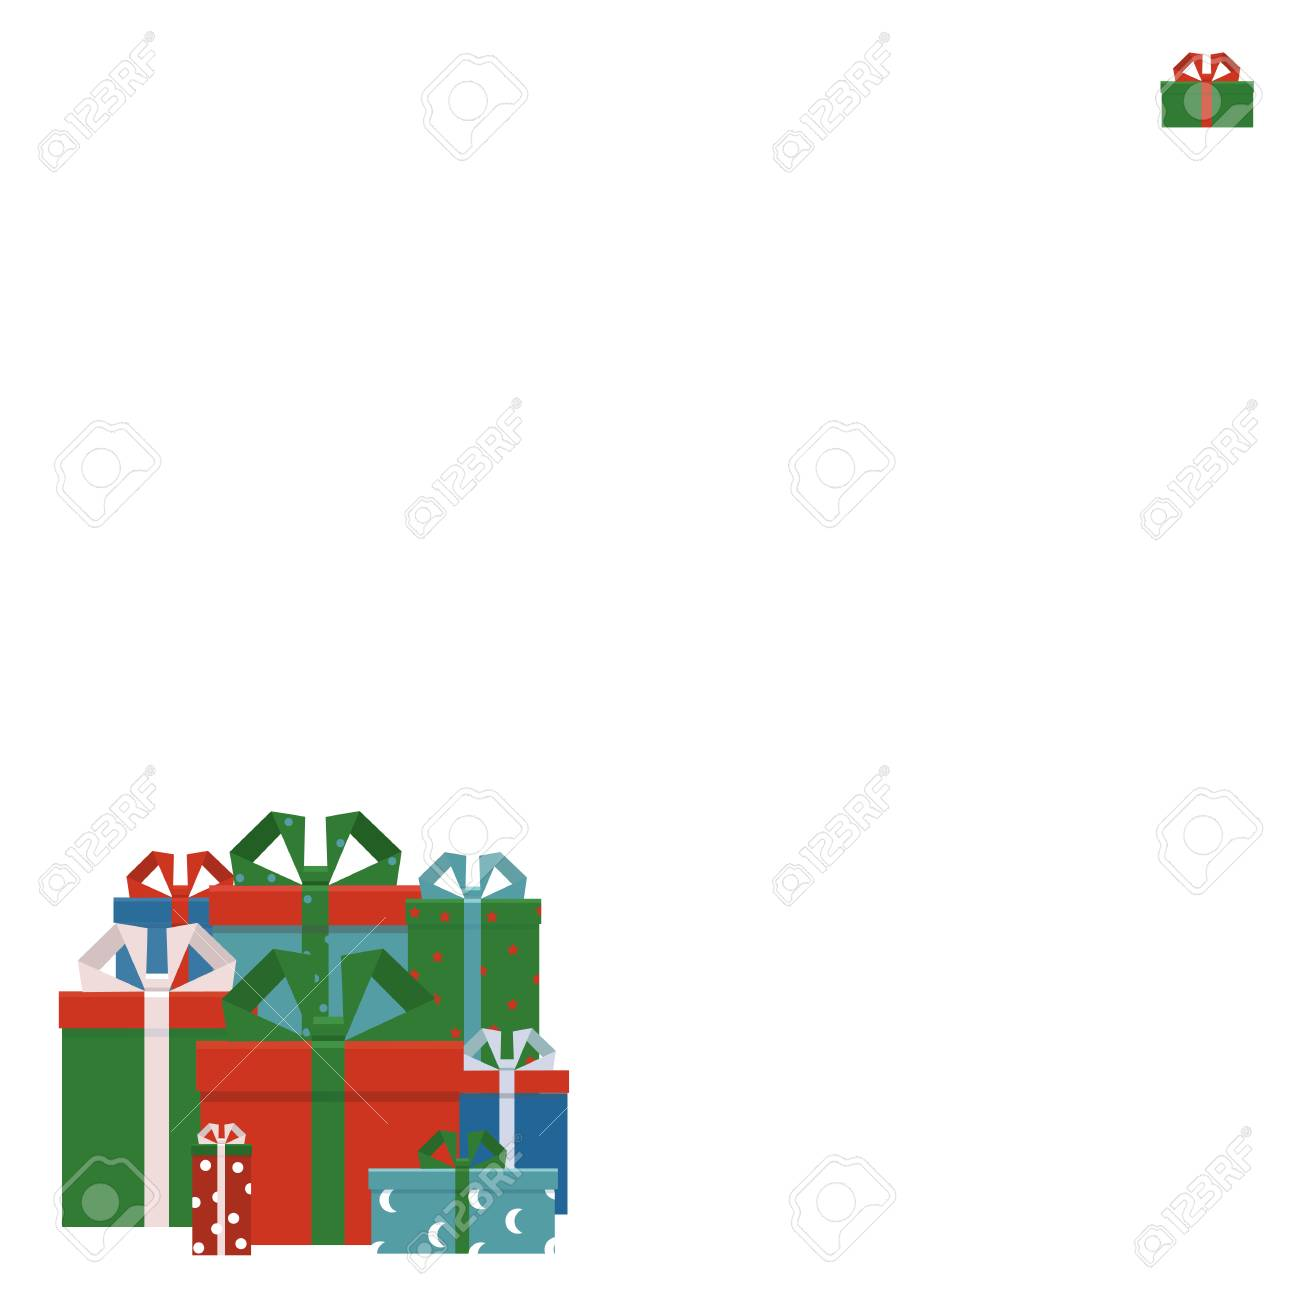 merry christmas and happy new year party invitation card with gift boxes poster holiday design